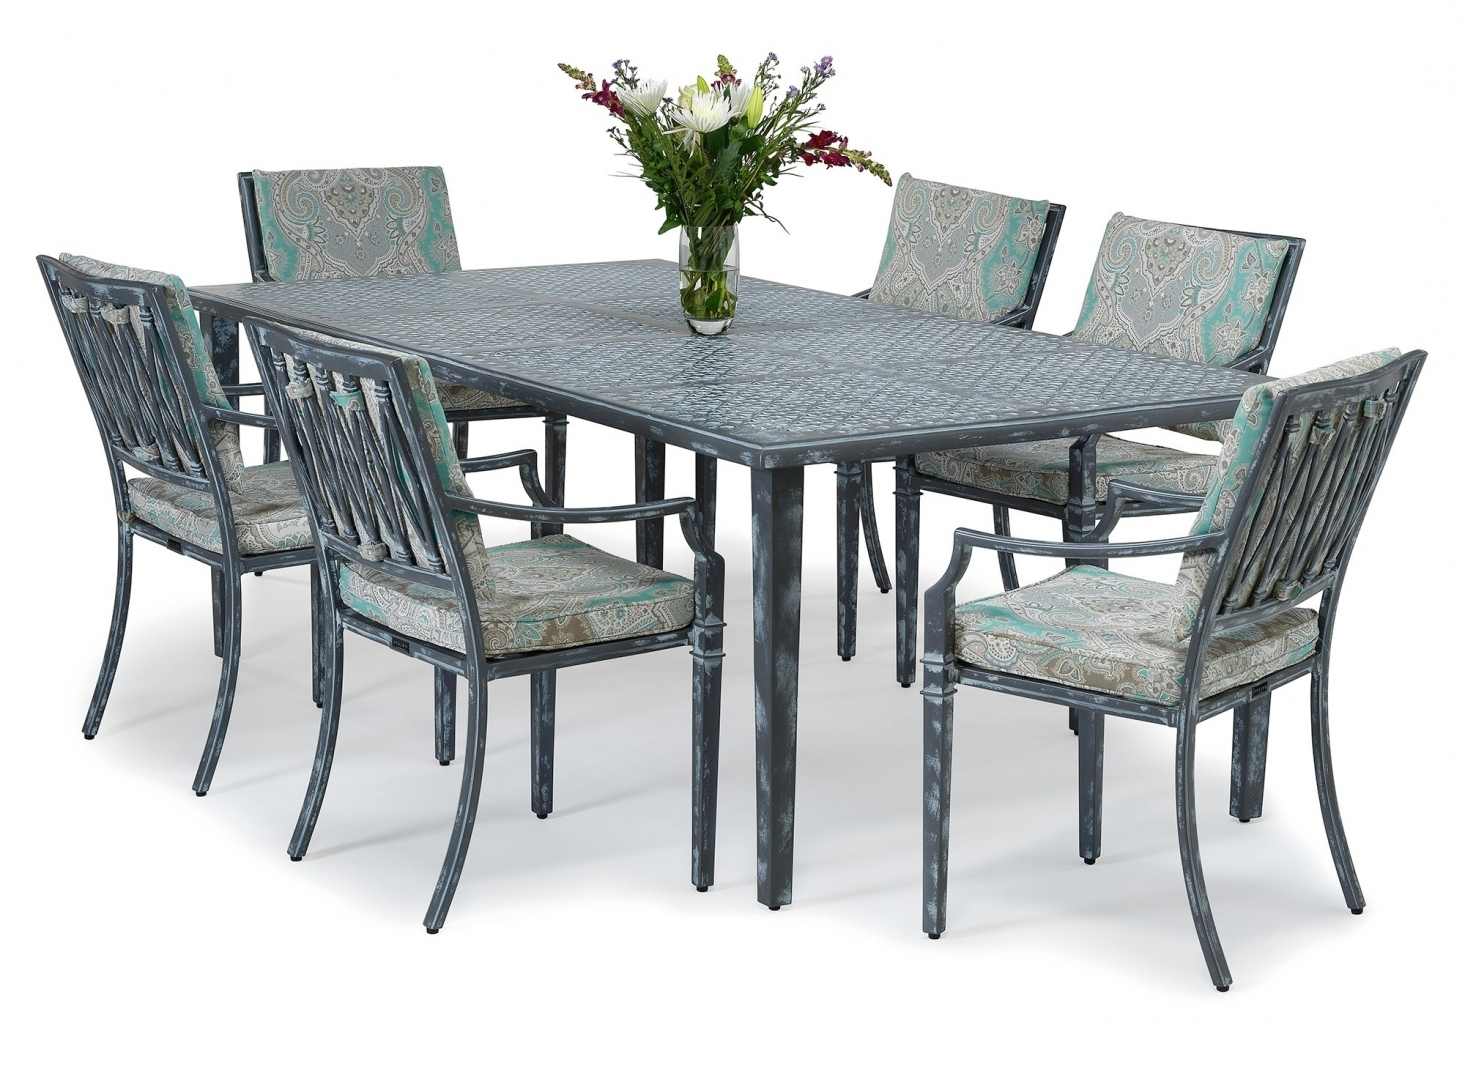 Current Sienna Metal Outdoor Dining Set, Metal Outdoor Furniture From For Outdoor Sienna Dining Tables (View 6 of 25)